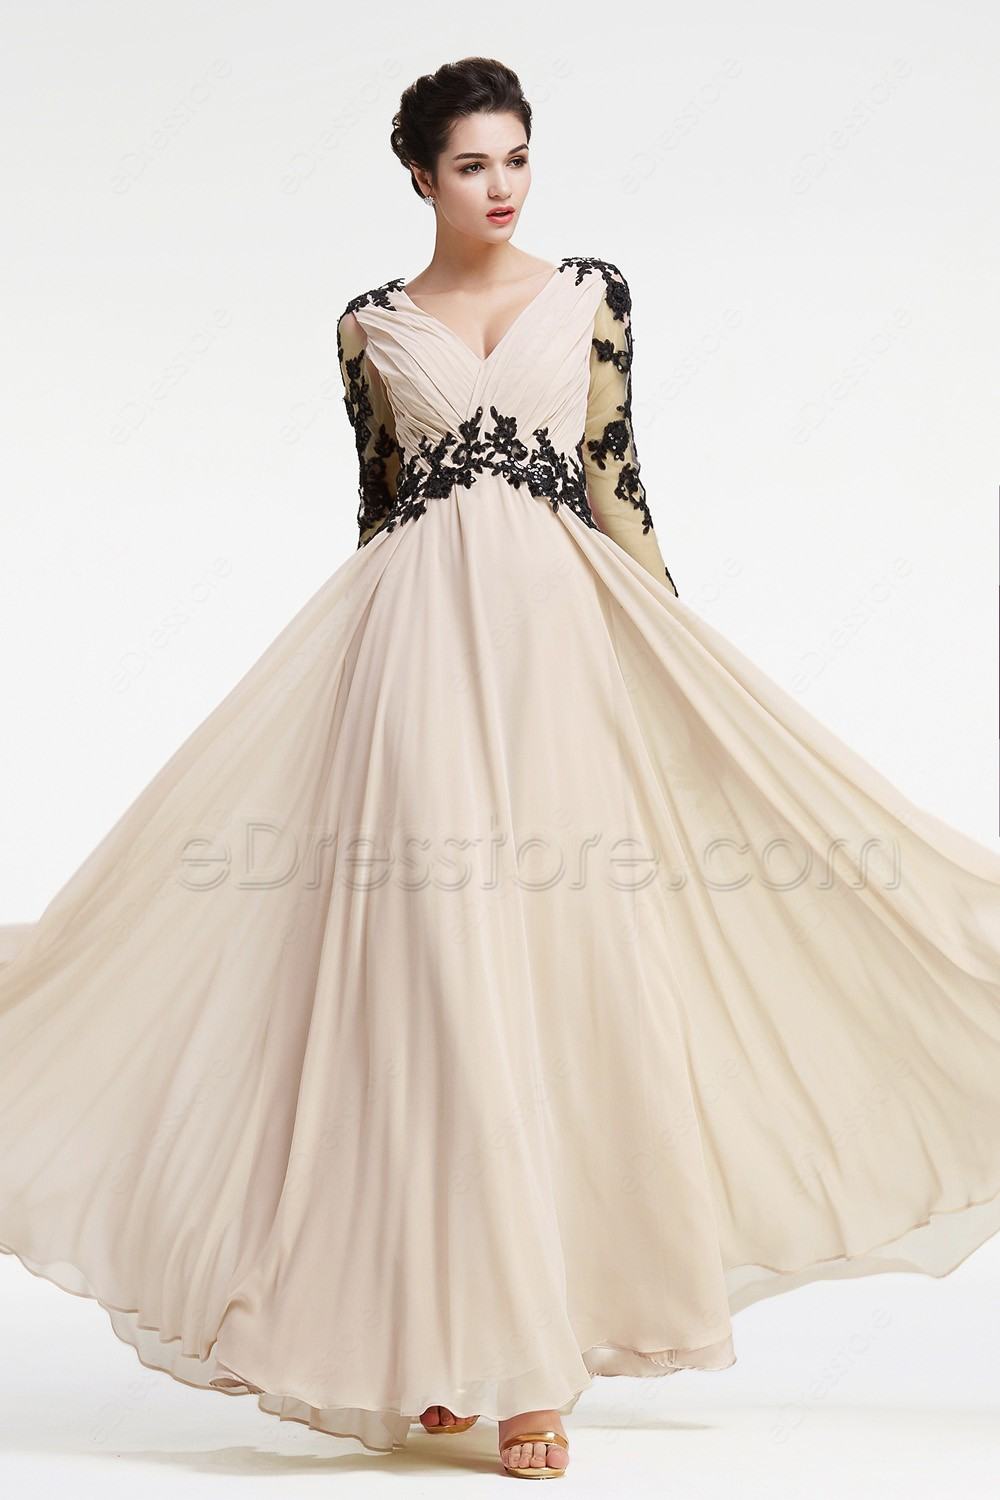 2017 new champagne long chiffon modest bridesmaid dresses 34 2017 new champagne long chiffon modest bridesmaid dresses 34 sleeves v neck black lace a line beach bridesmaid gowns country in bridesmaid dresses from ombrellifo Gallery